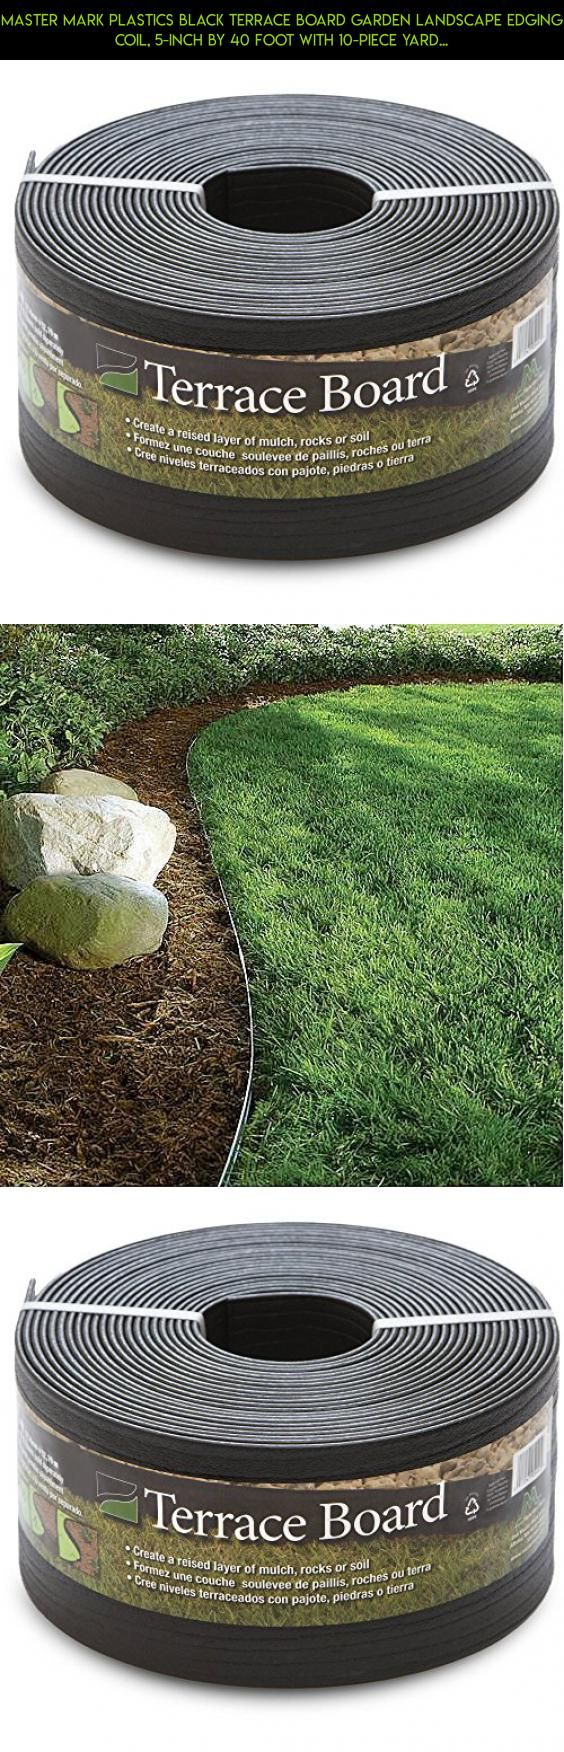 Master Mark Plastics Black Terrace Board Garden Landscape Edging Coil, 5-Inch By 40 Foot with 10-Piece Yard Landscape Stakes #shopping #milk #bags #technology #kit #drone #parts #camera #plans #racing #products #storage #tech #gadgets #fpv